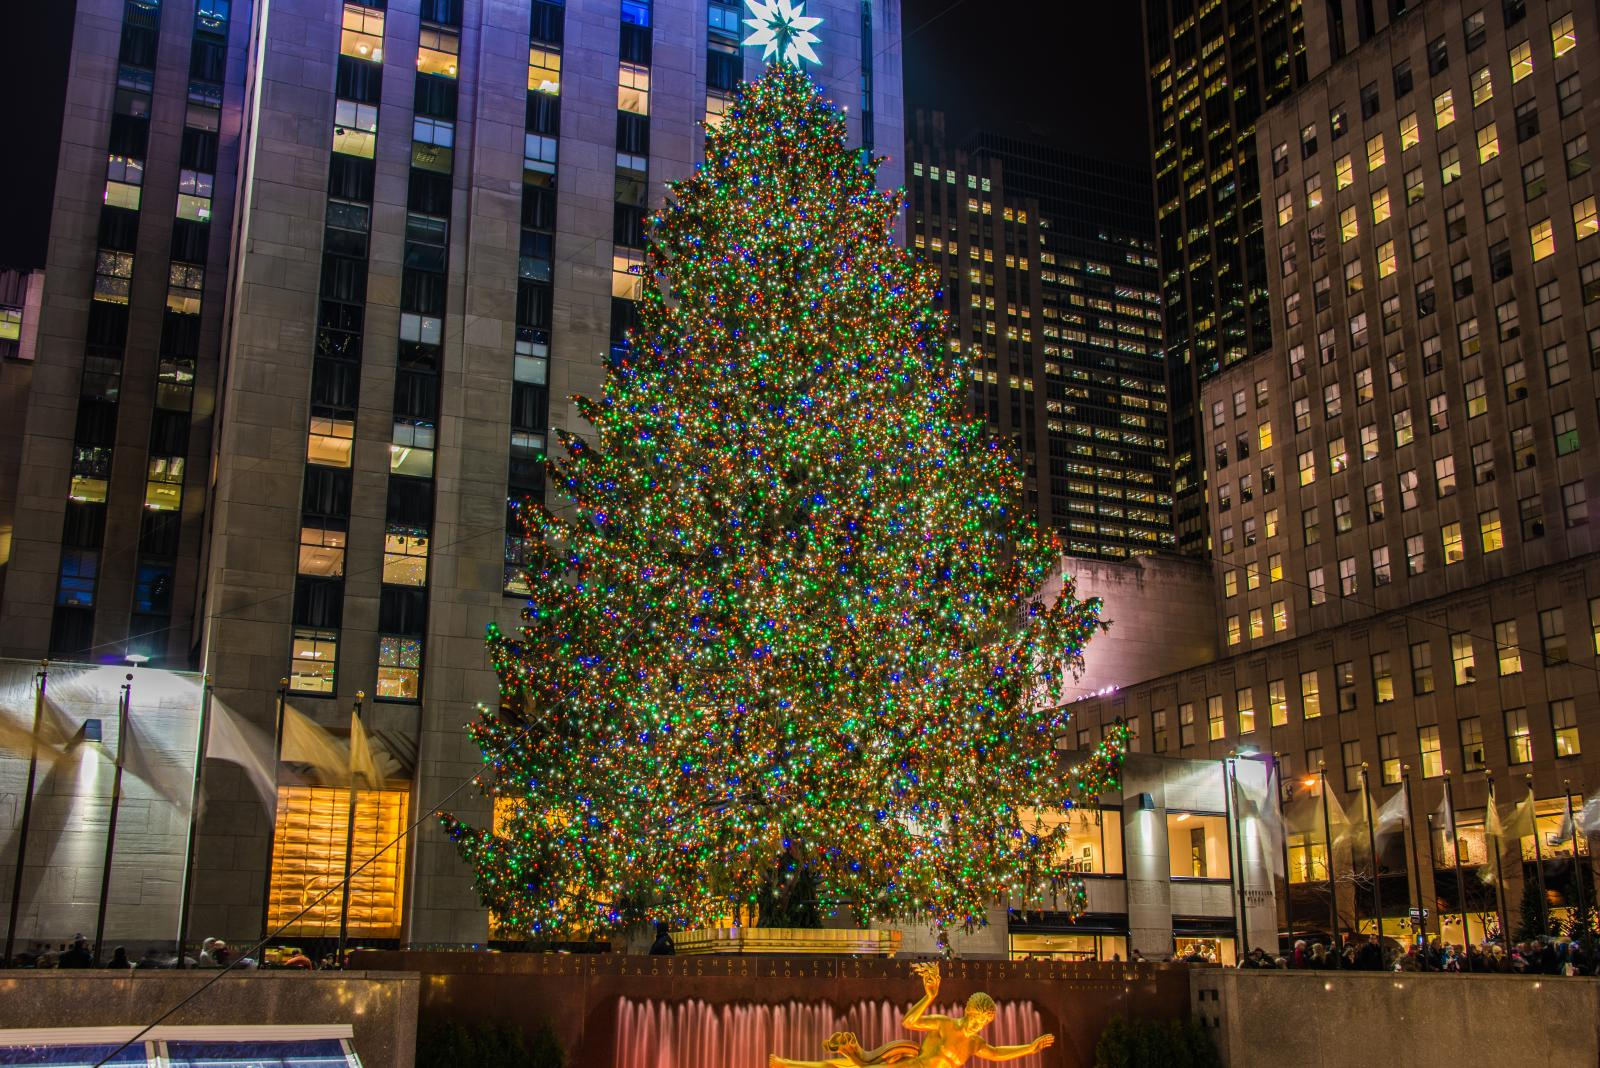 Christmas Ny 2019.The Rockefeller Christmas Tree 2019 Our Top 10 Facts